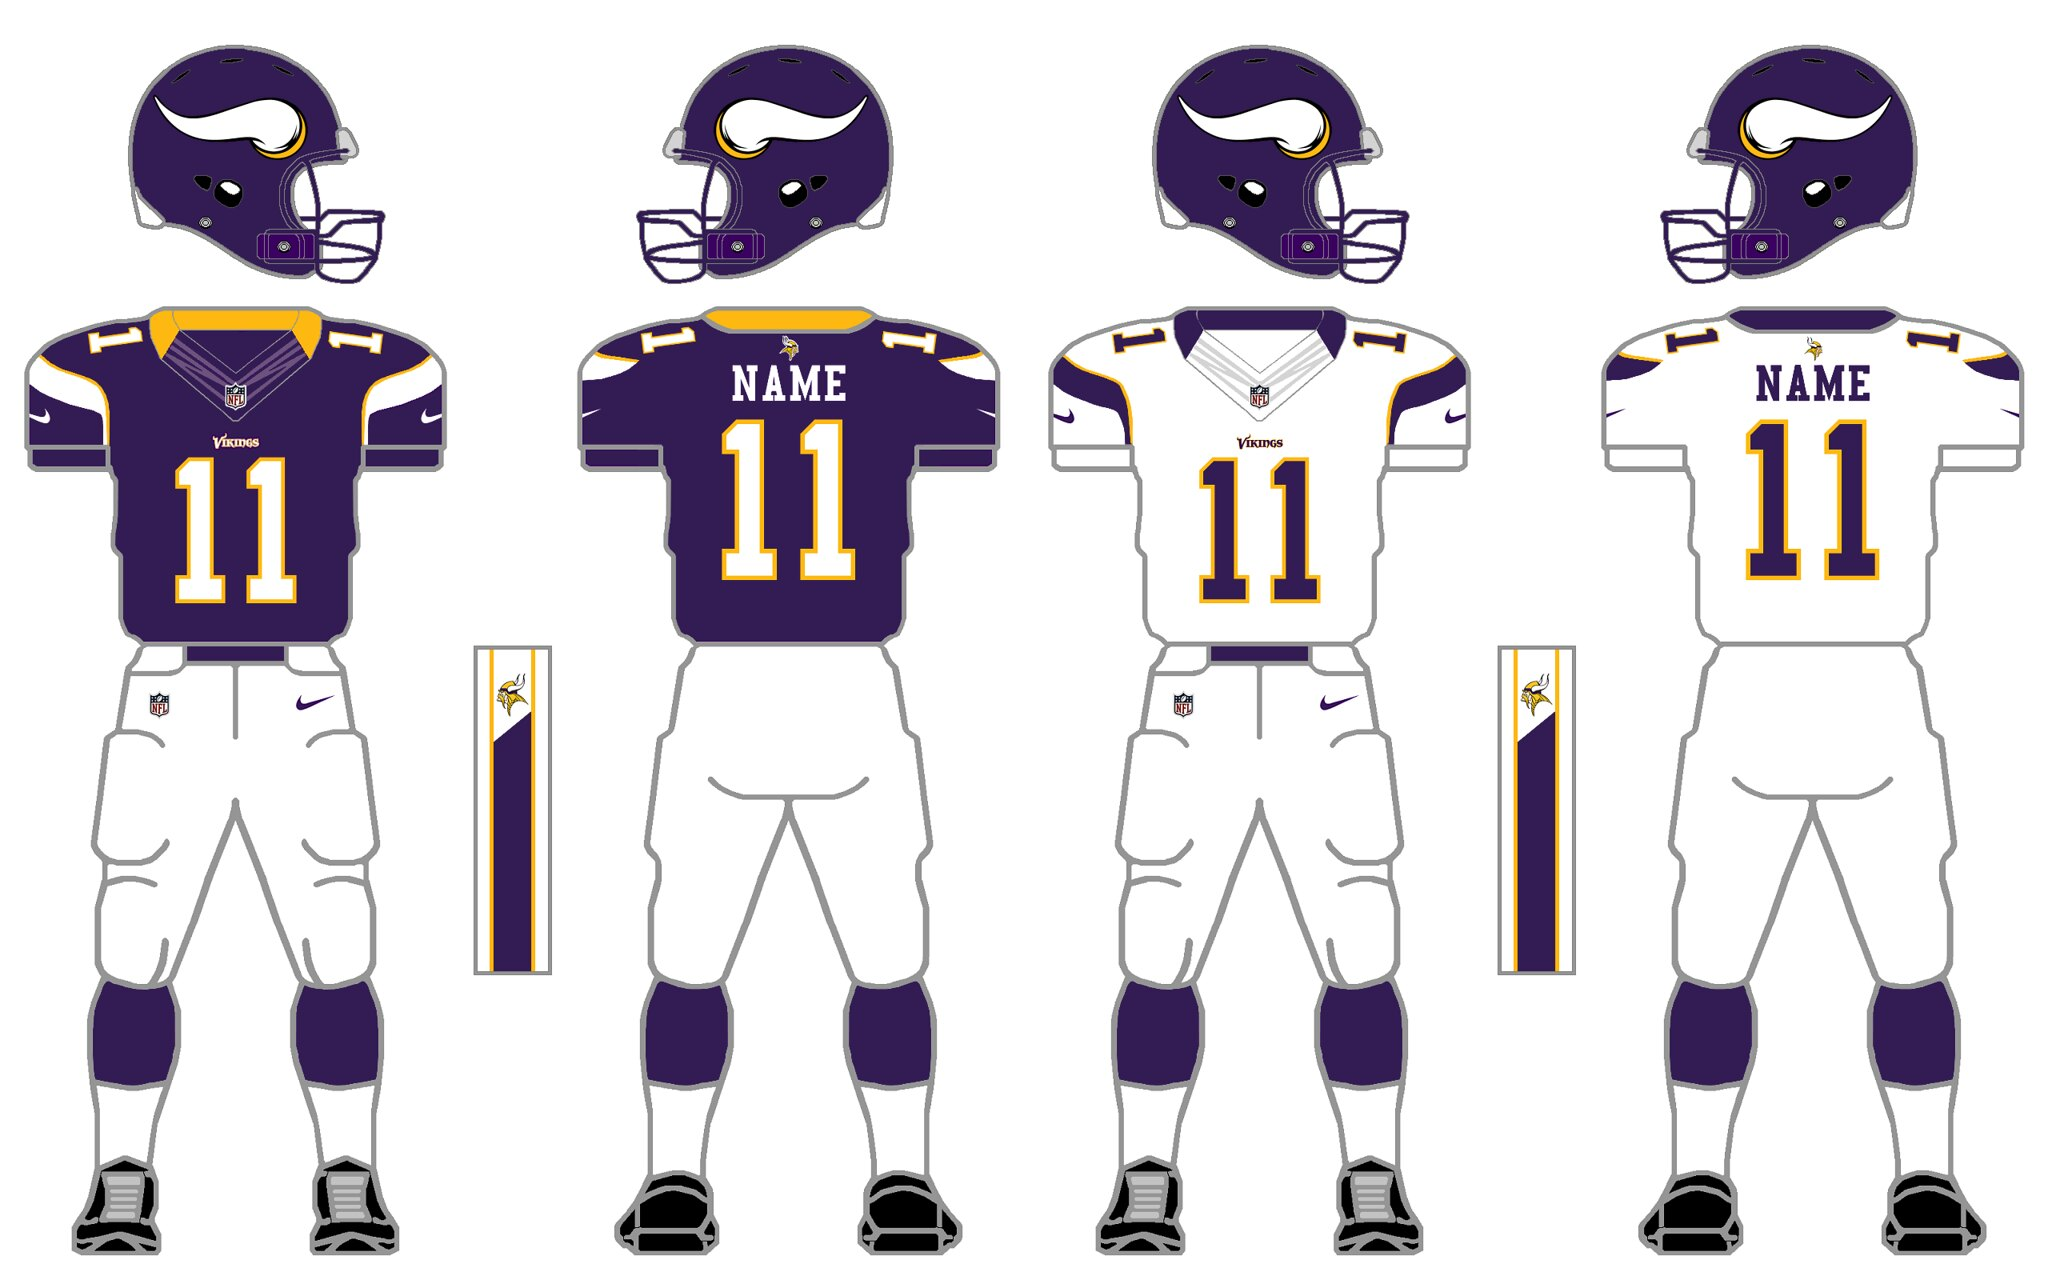 f6ab3319f79 ... Vikings currently have the worst uniforms in the NFL. The ugly side  panels, the weird burple color, the once every blue moon burple pants… it's  a mess.